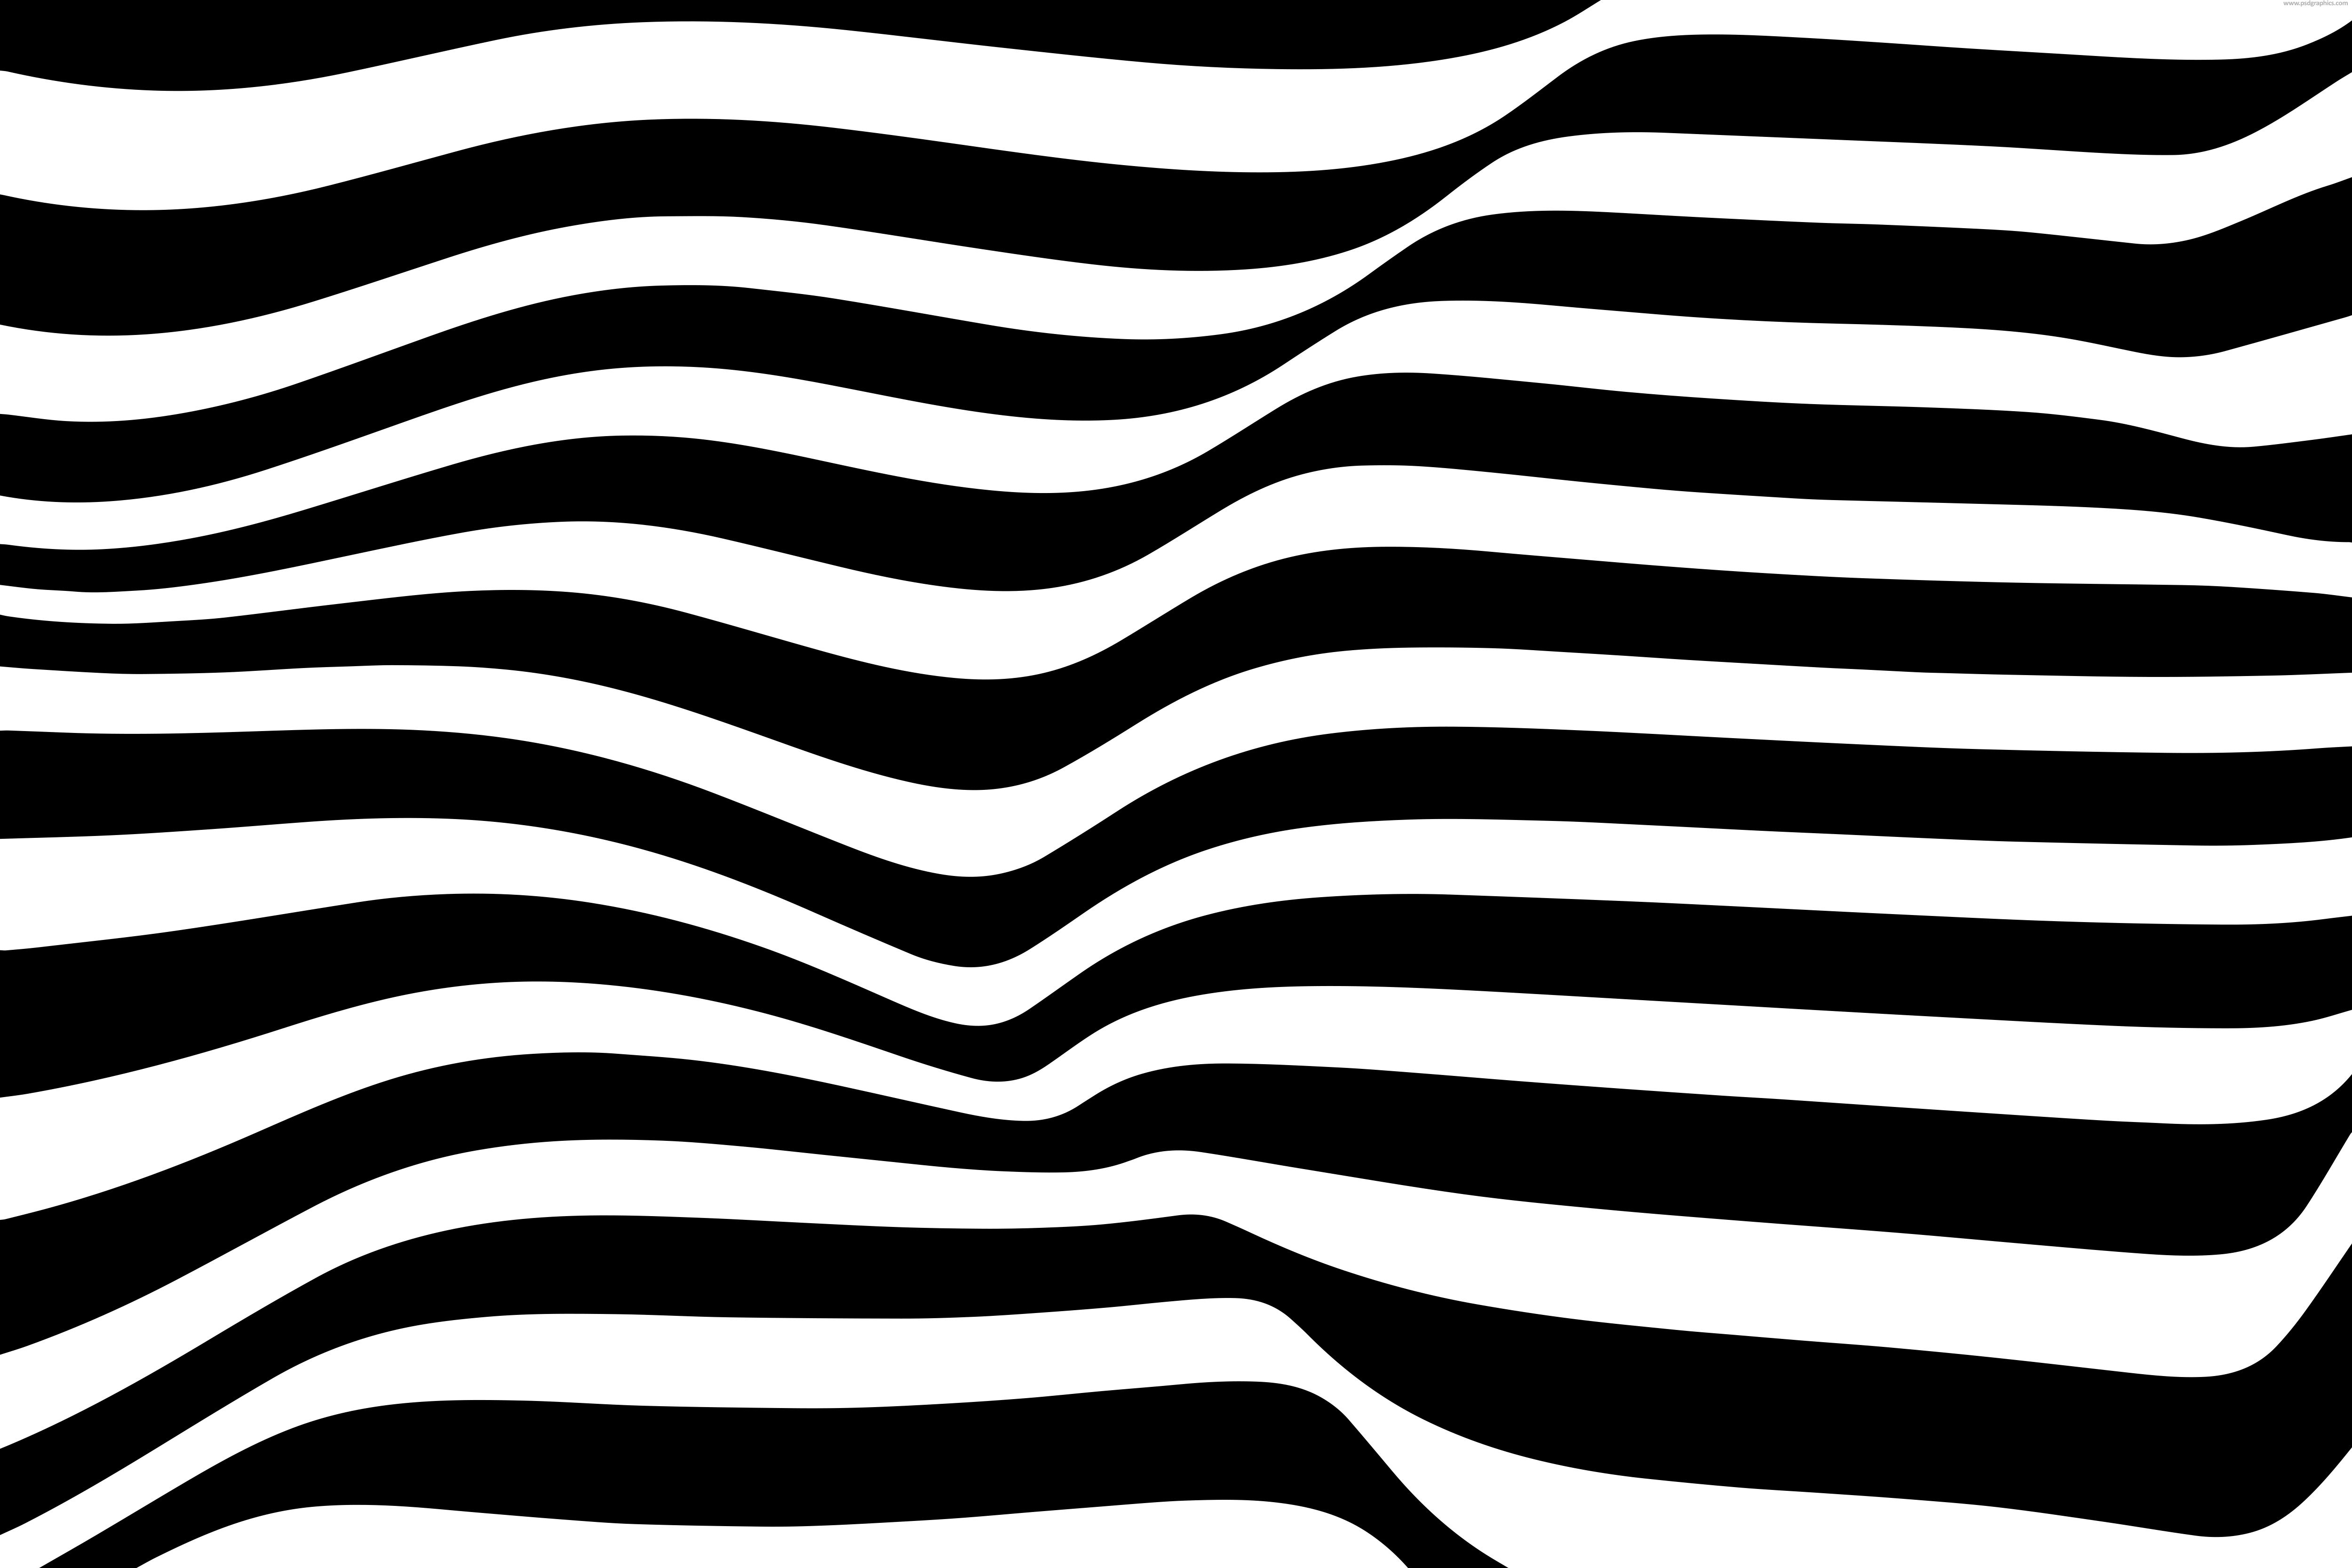 black and white wavy lines background psdgraphics